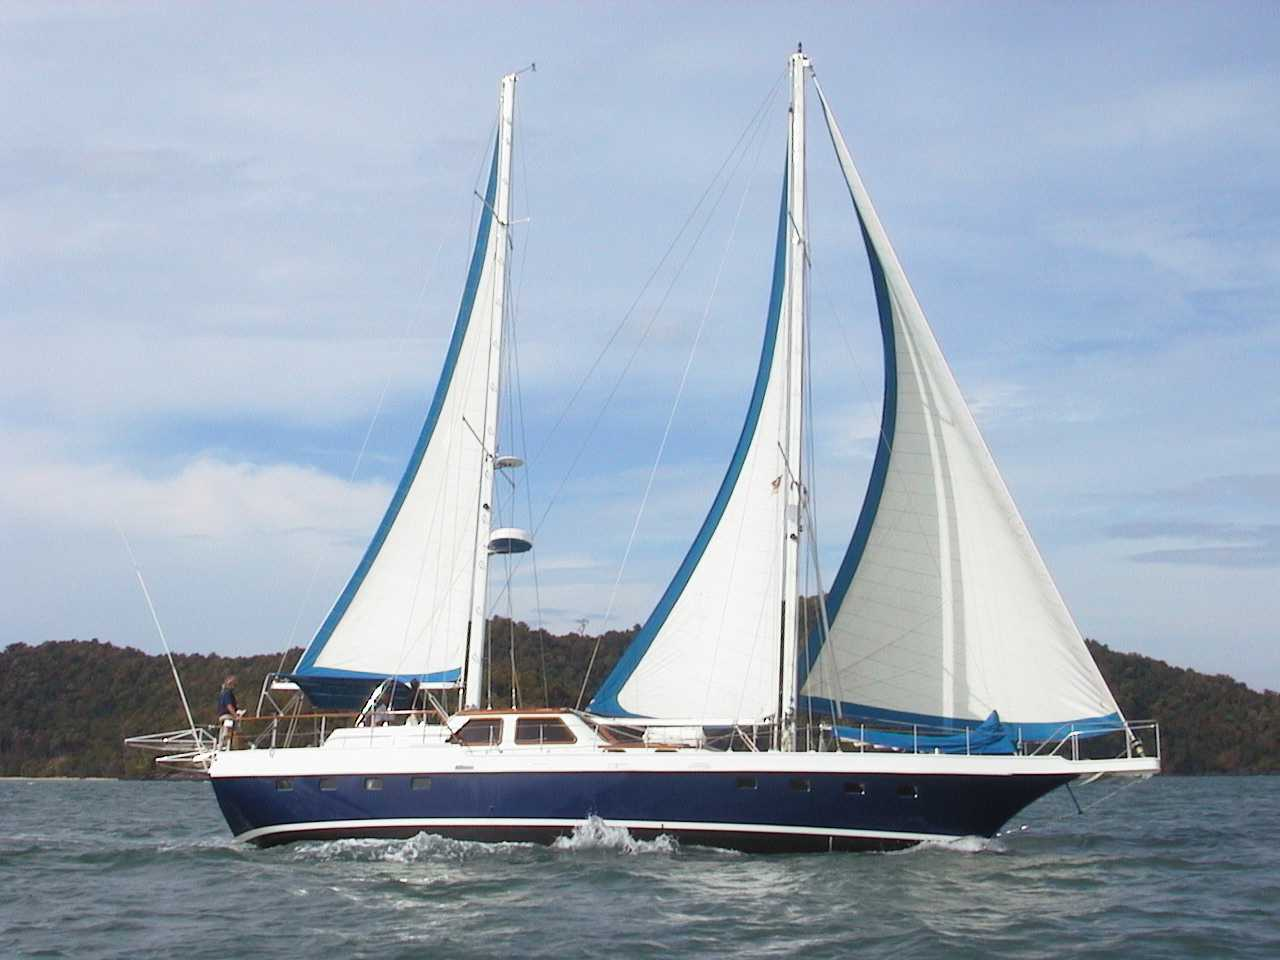 Click image for larger version  Name:Sail8.jpg Views:89 Size:68.0 KB ID:3048